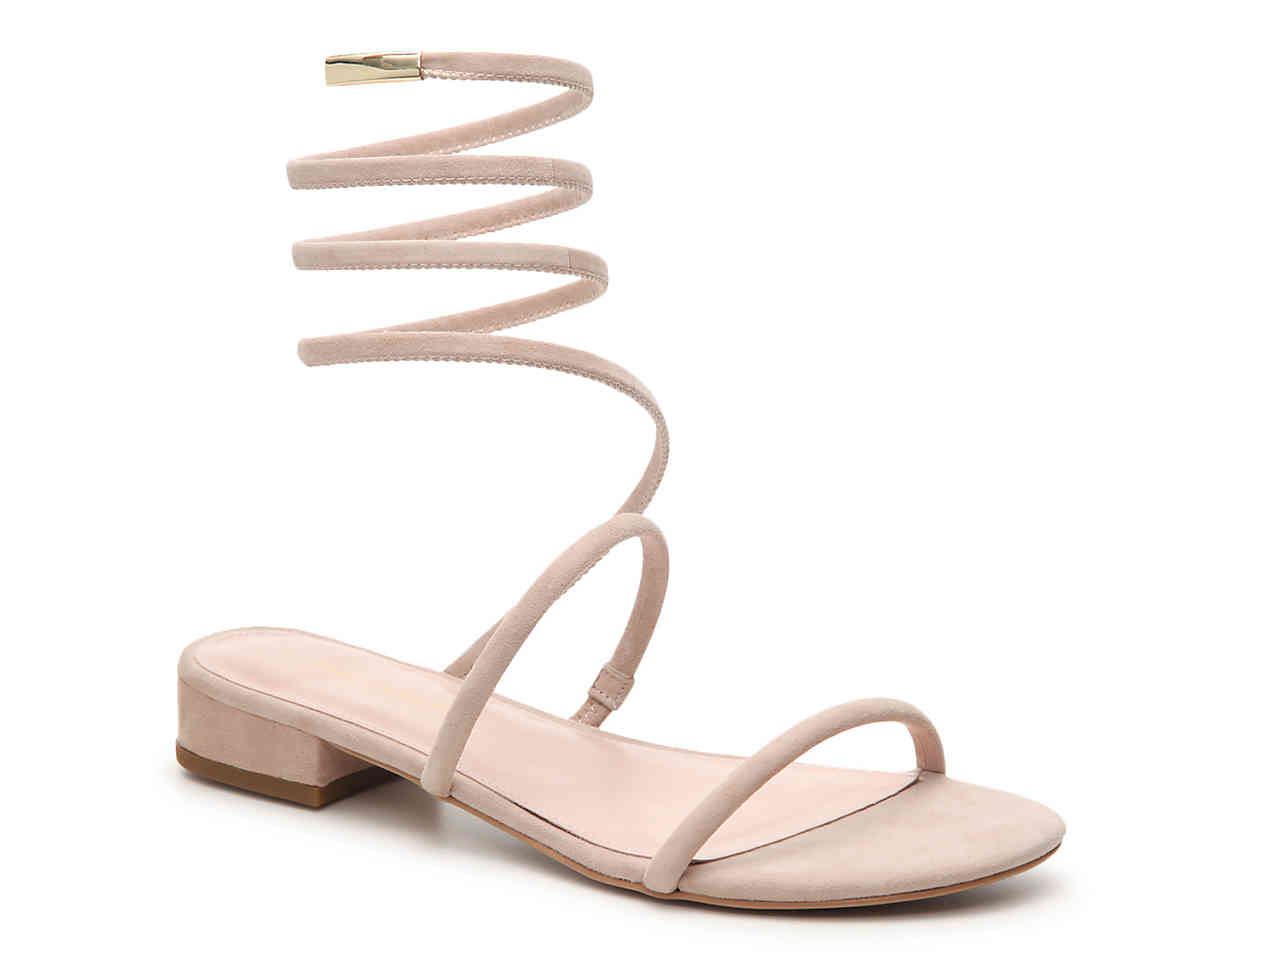 Shop these coil ankle strap sandals by clicking on the image or  HERE.